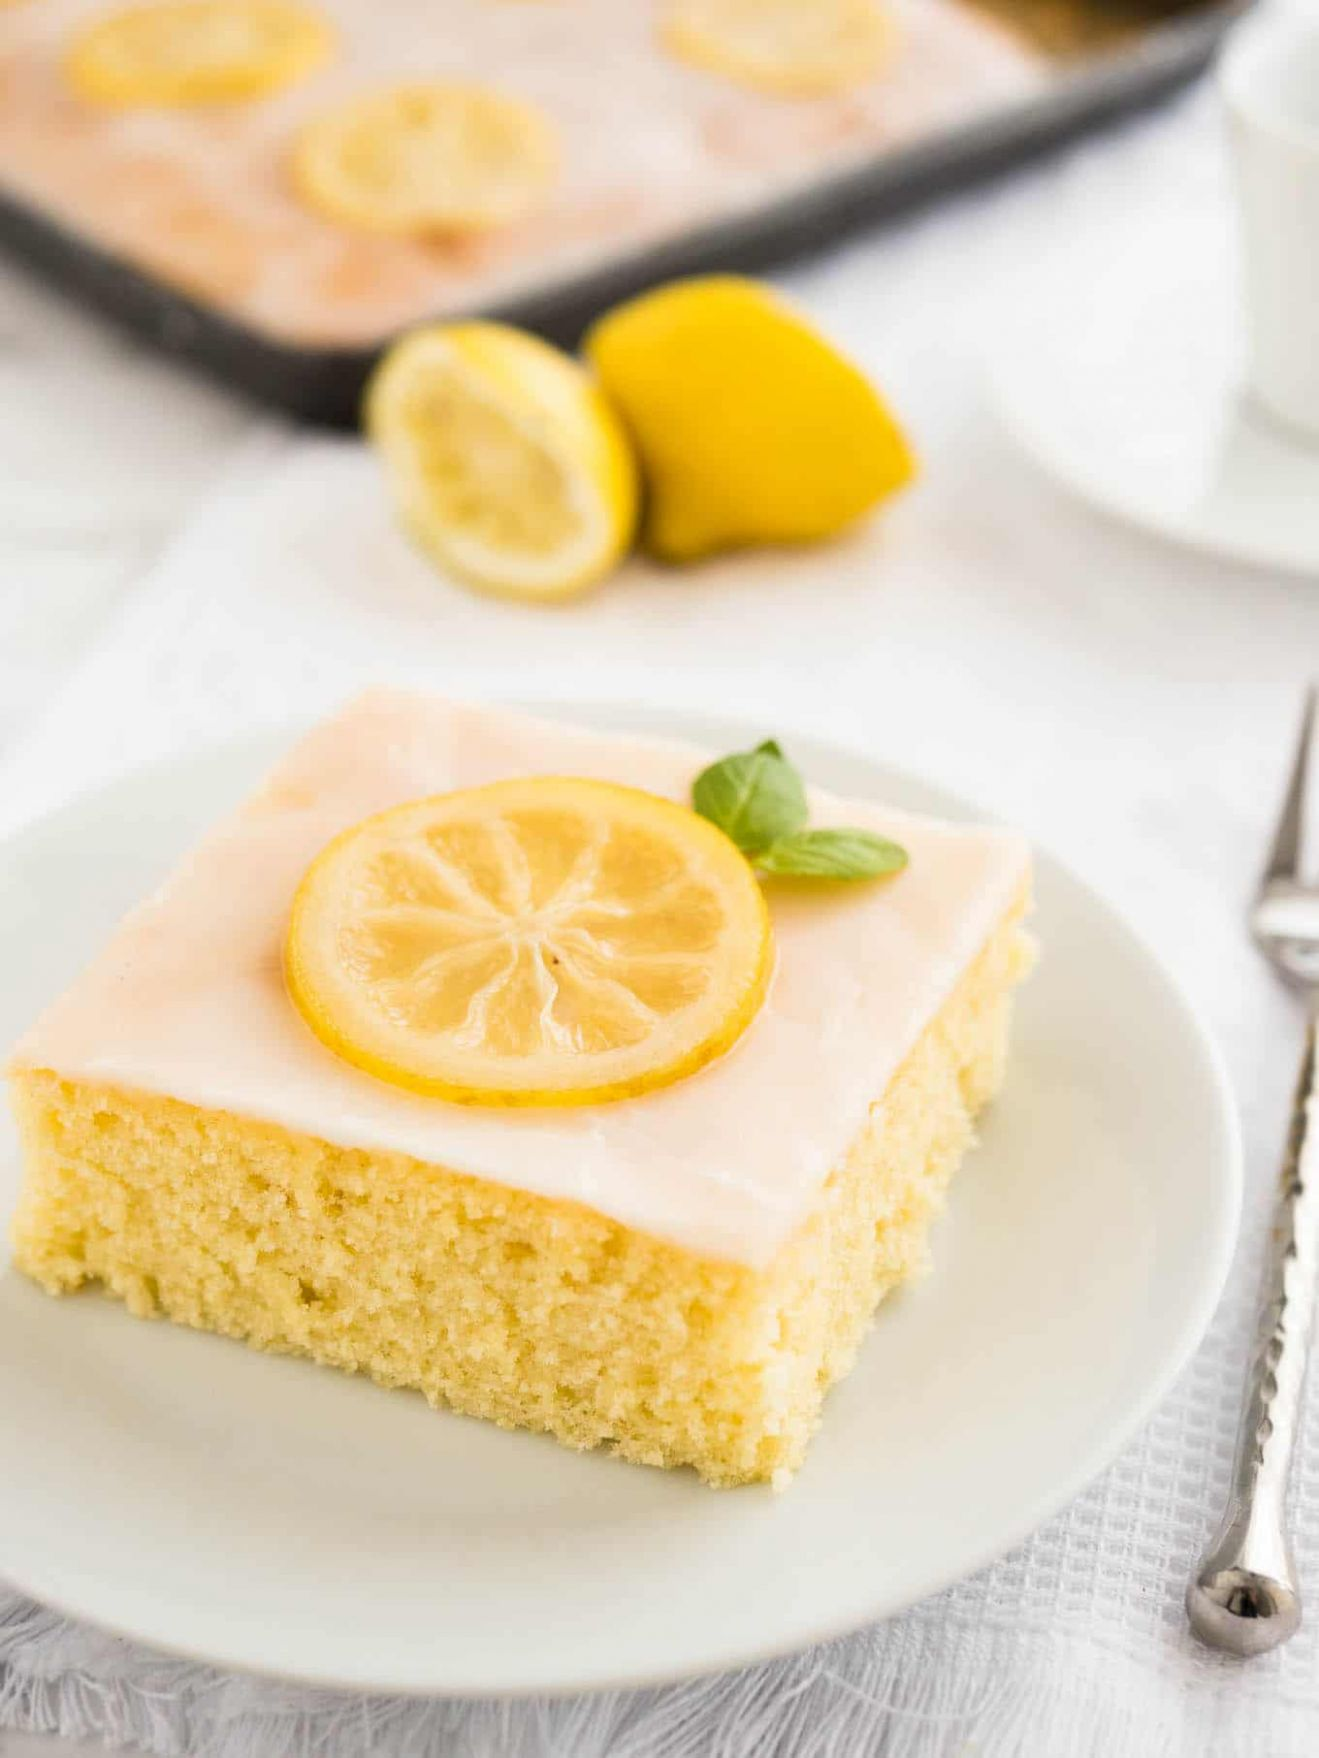 Easy Lemon Sheet Cake - Cake Recipes For 9 X 13 Pan